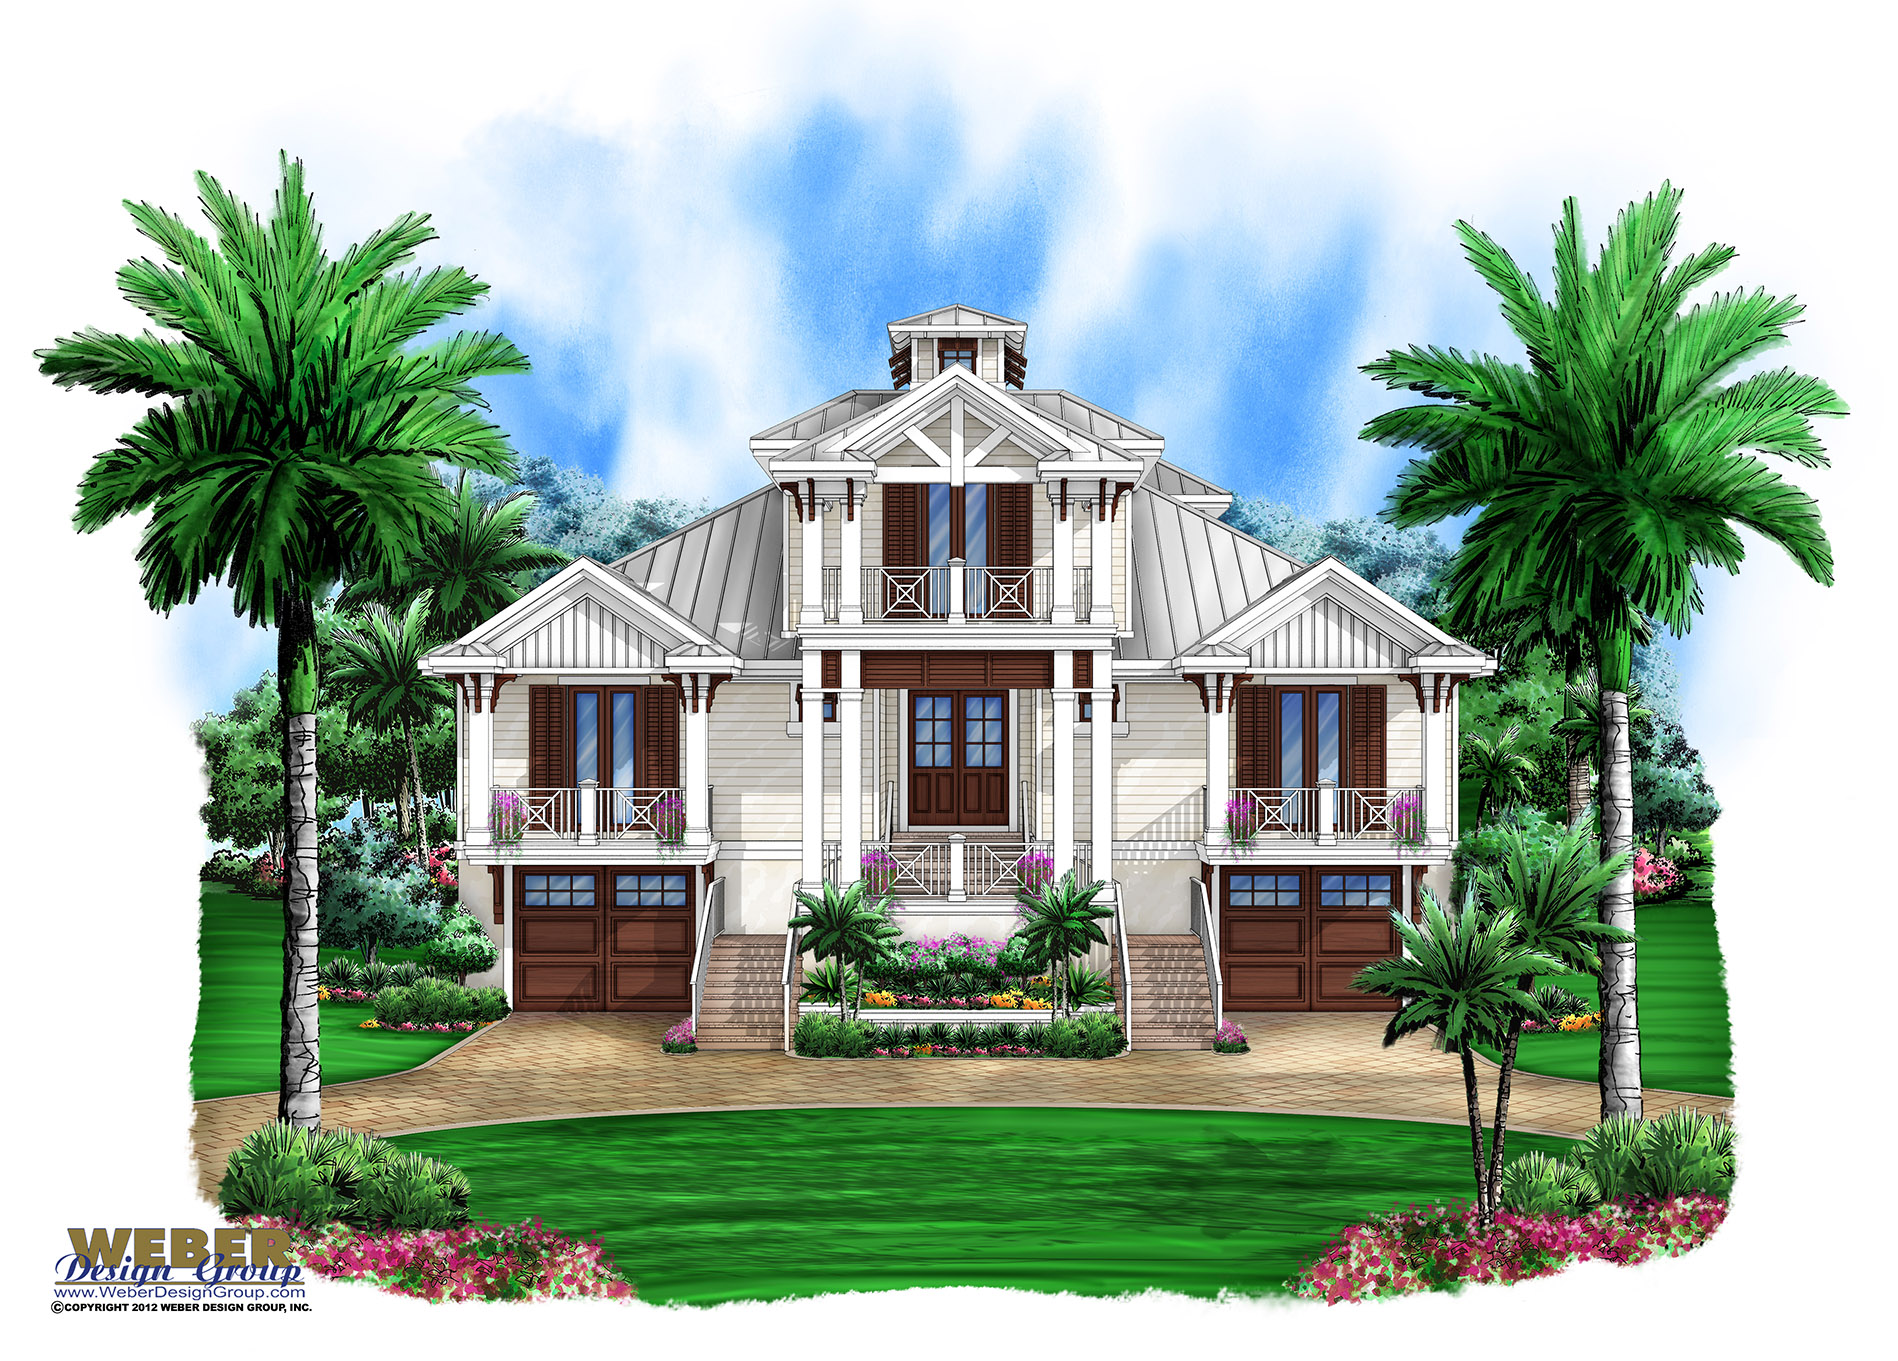 Marsh harbour olde florida house plan weber design group for Coastal style house plans